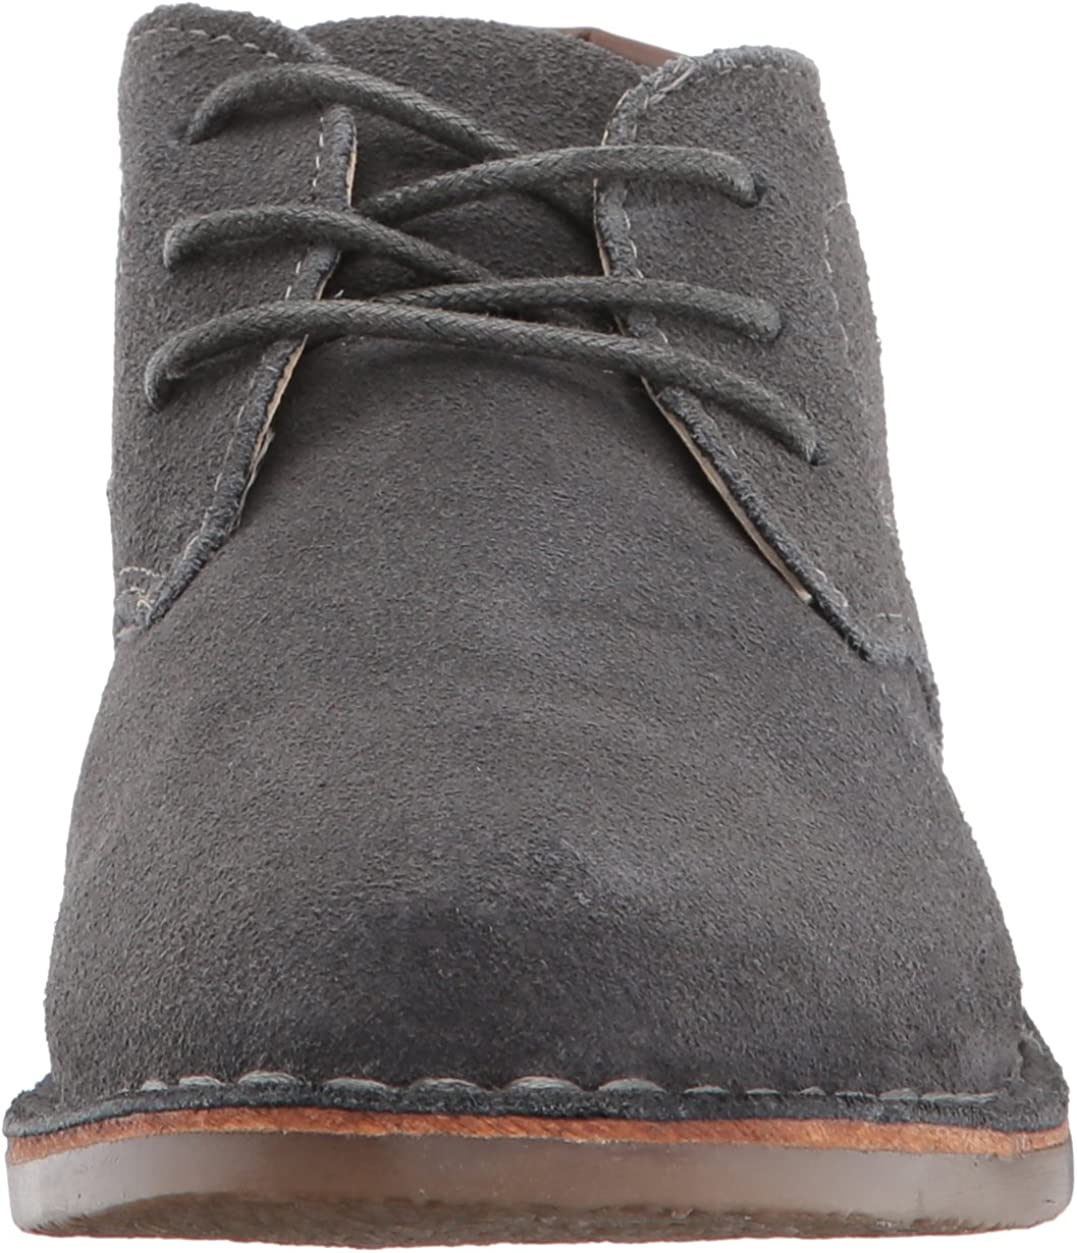 Kenneth Cole REACTION Kids Real Deal Chukka